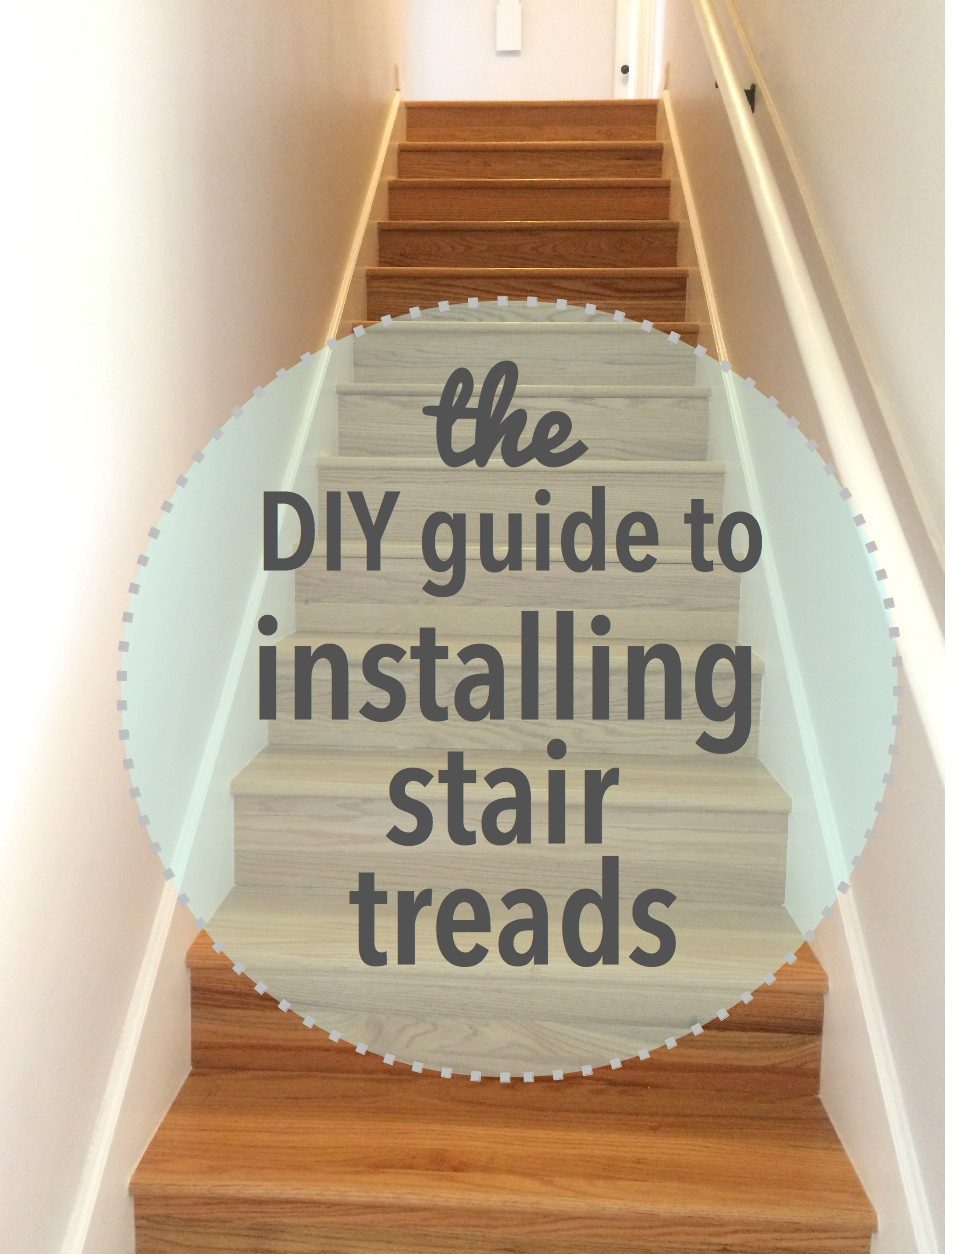 Best ideas about DIY Stair Treads . Save or Pin The DIY Guide to Installing Stair Treads – Our Tennessee Home Now.